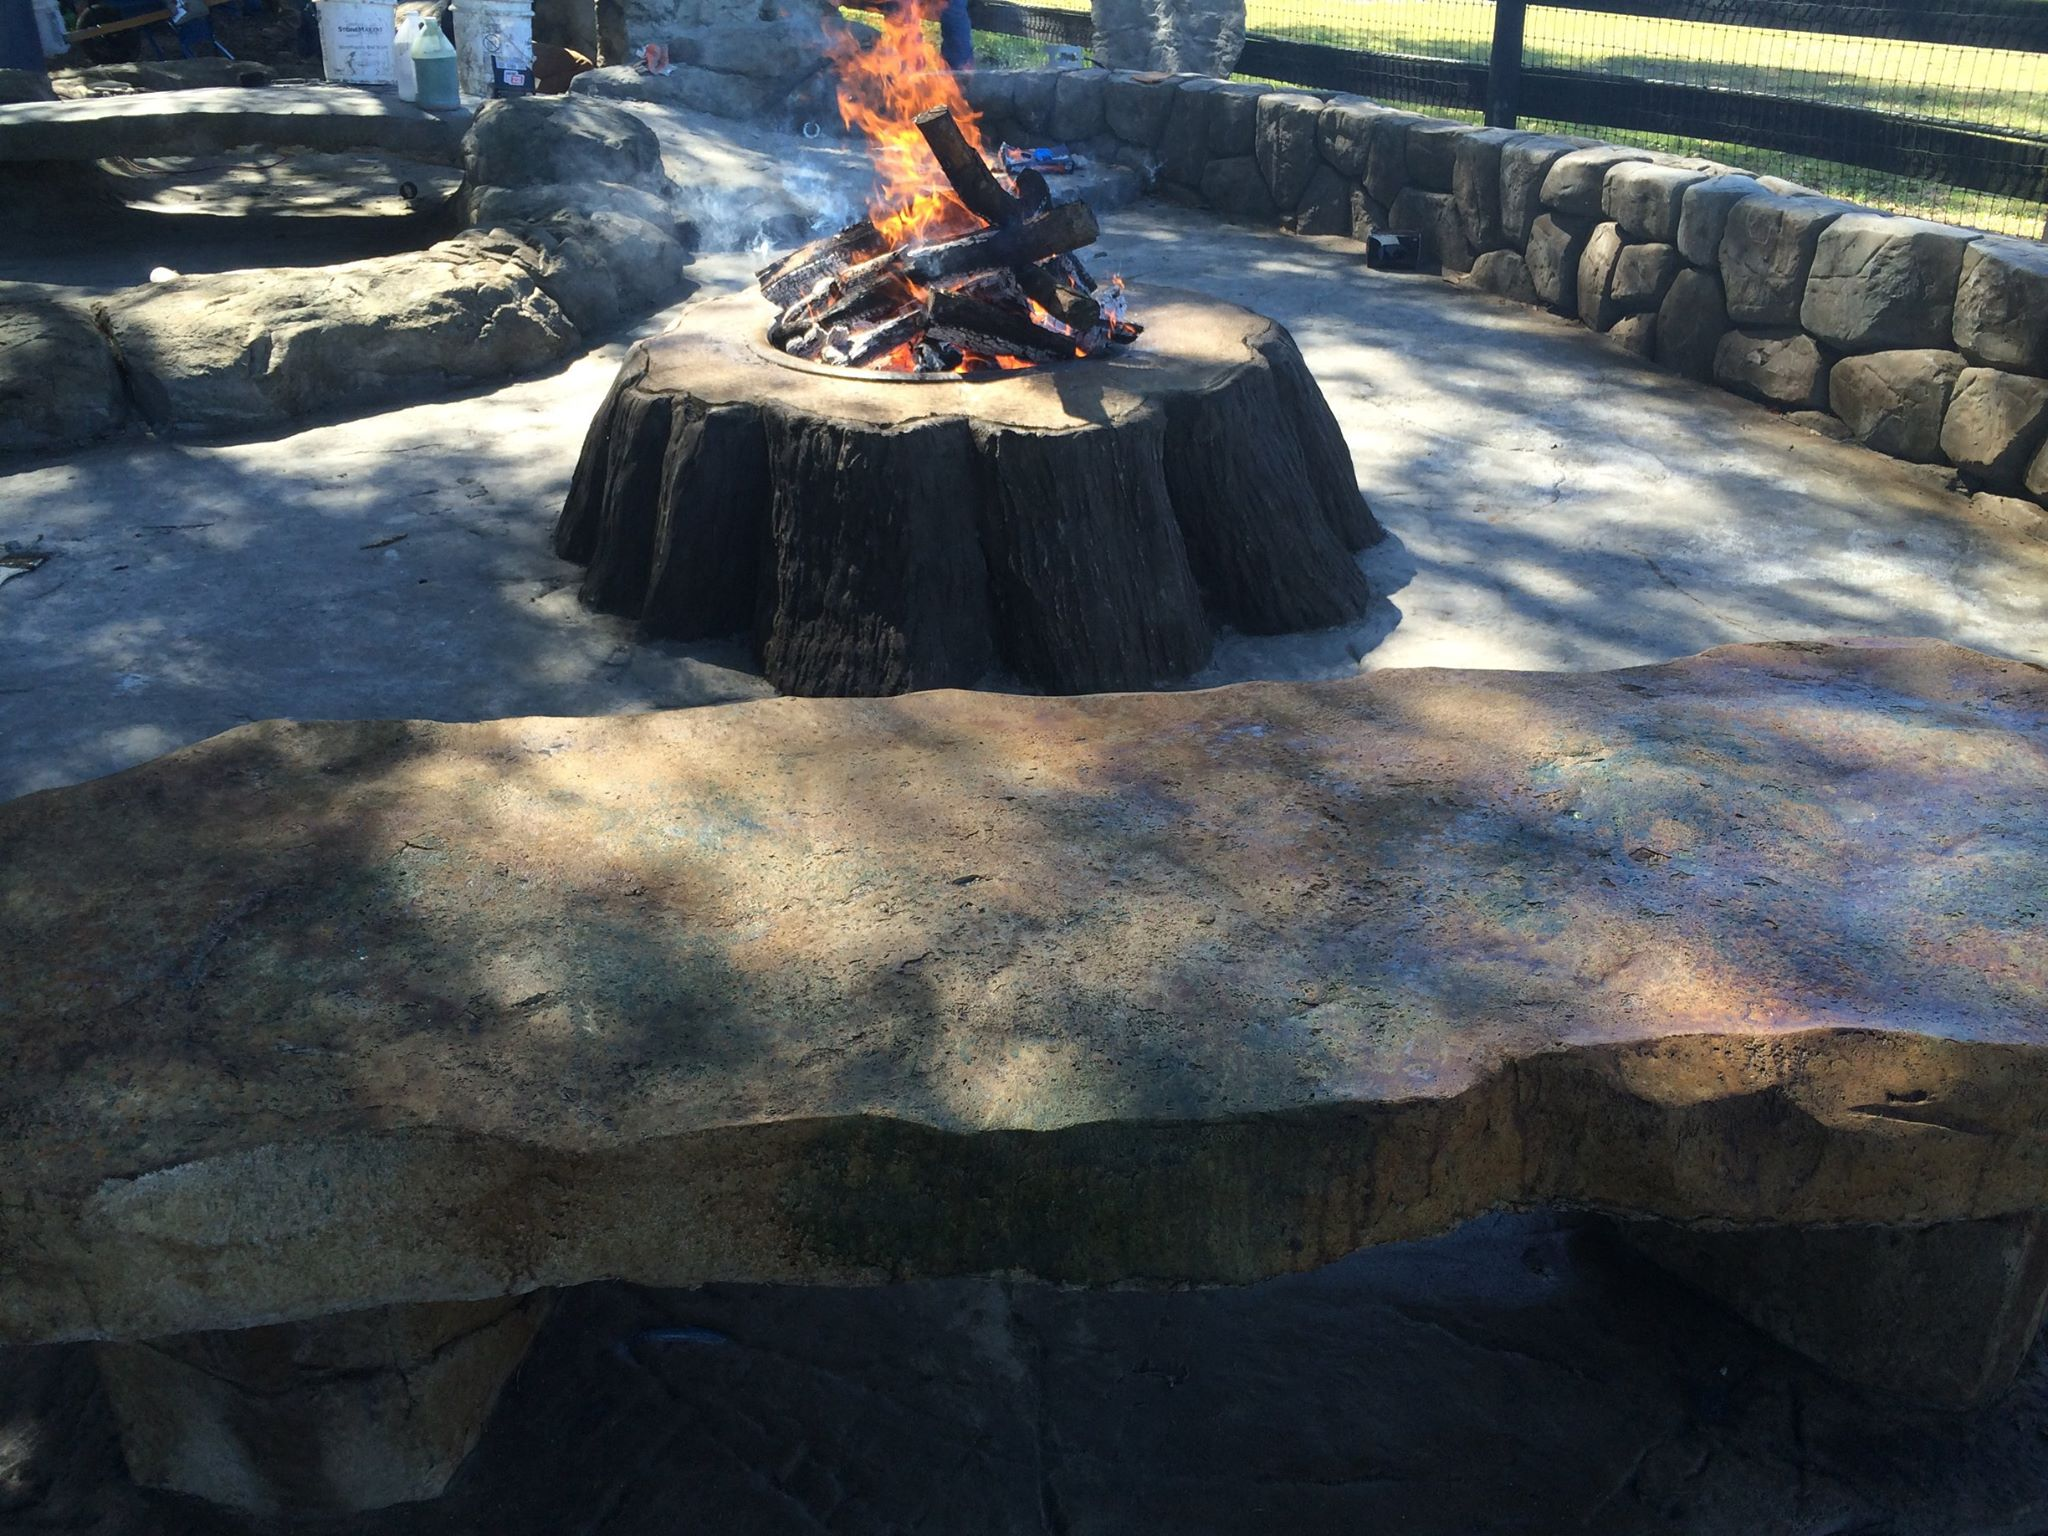 Firepit with burning Logs Stacked High